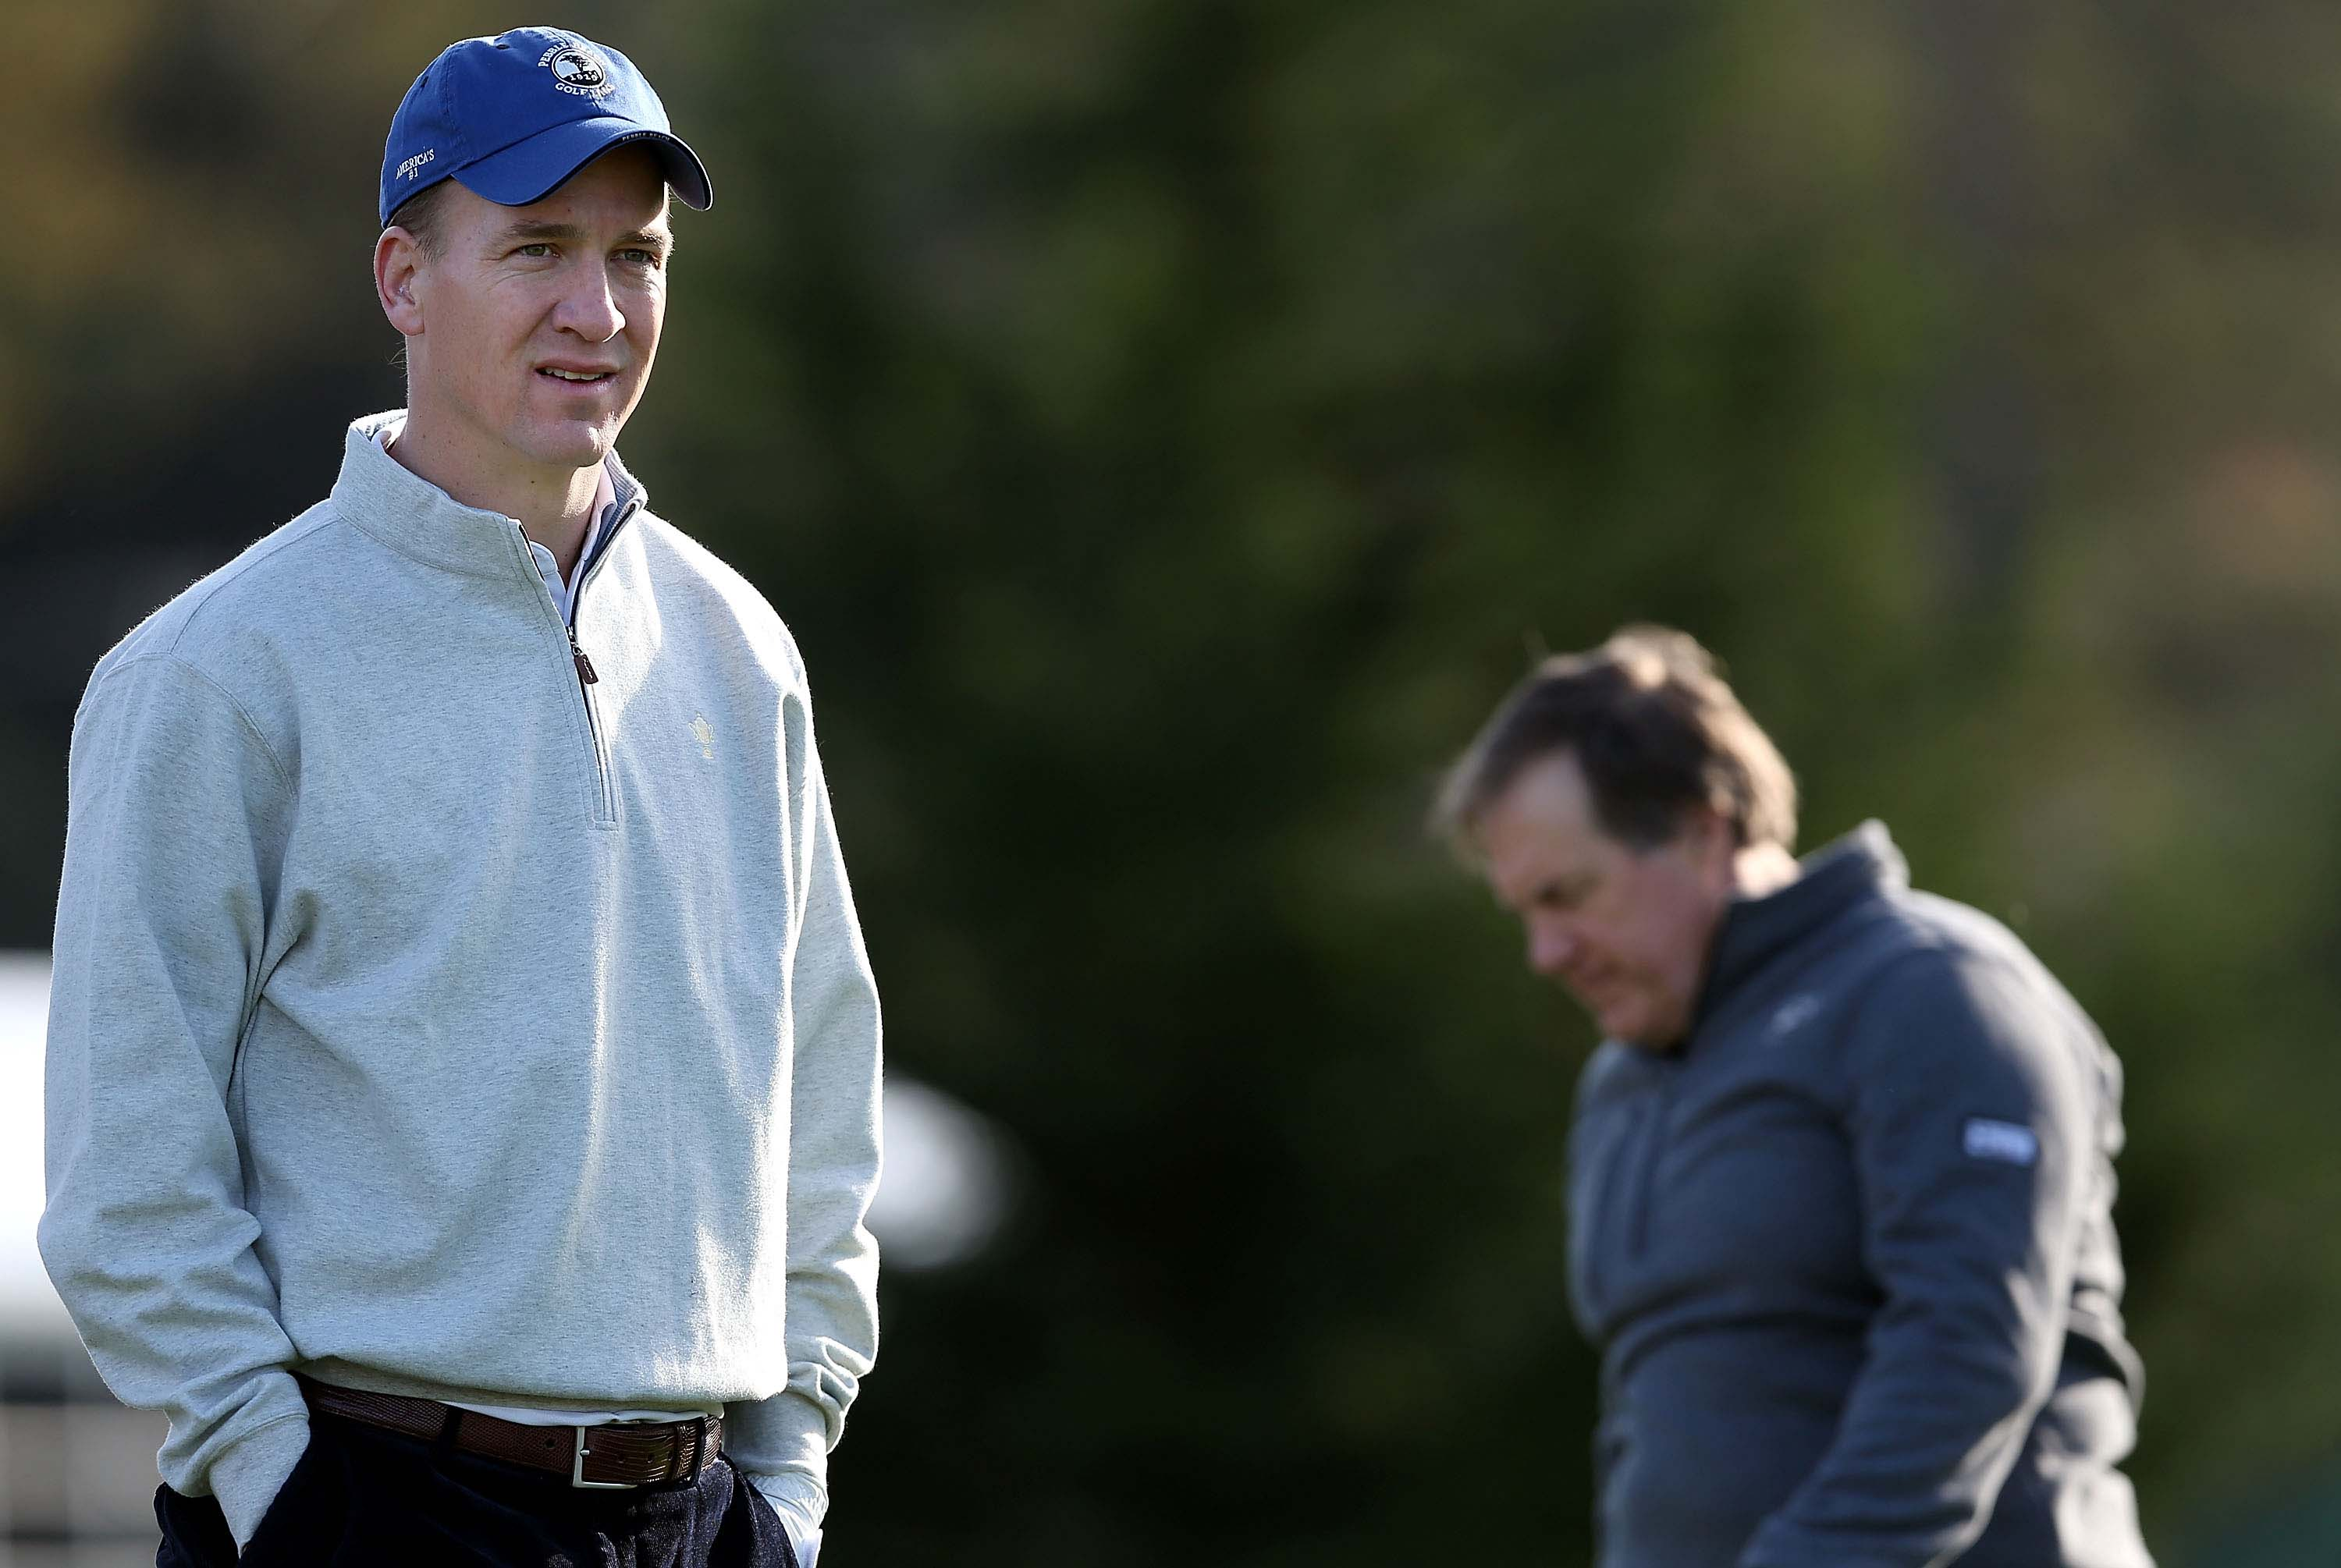 Peyton Manning and Bill Belichick